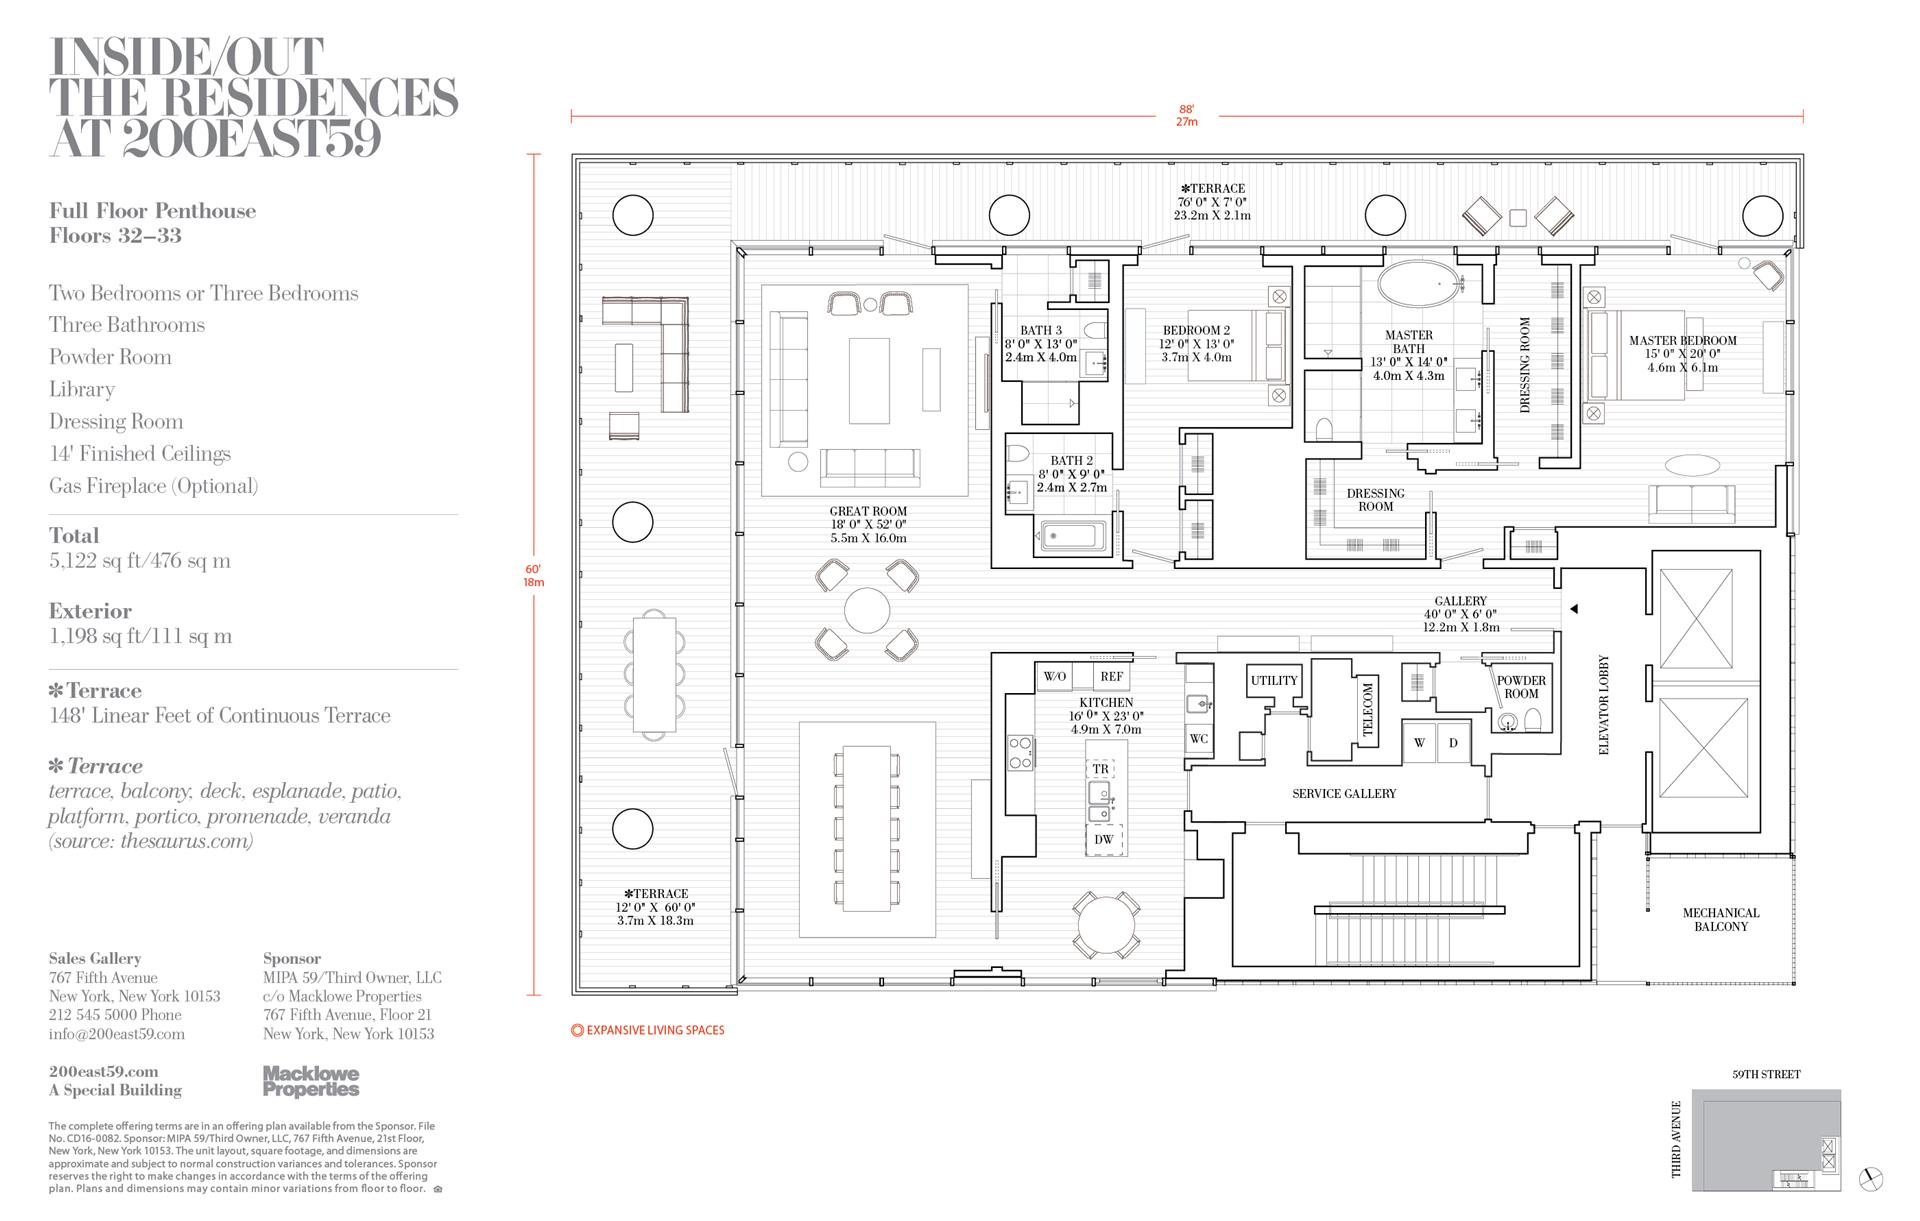 Floor plan of 200 East 59th St, PH32 - Midtown, New York